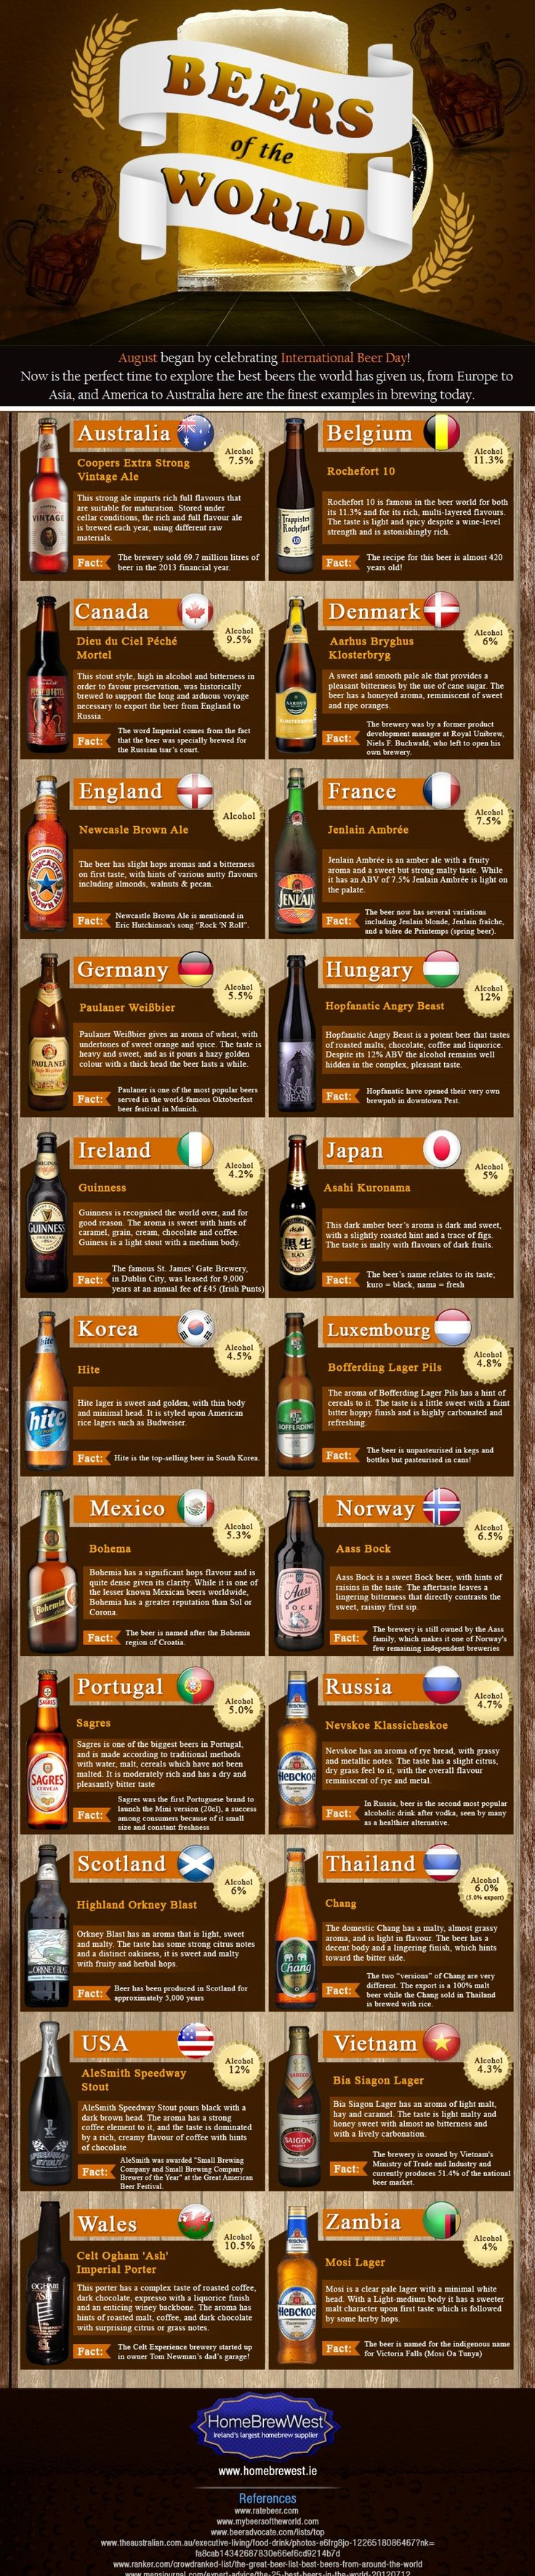 Beers of the World [Infographic]